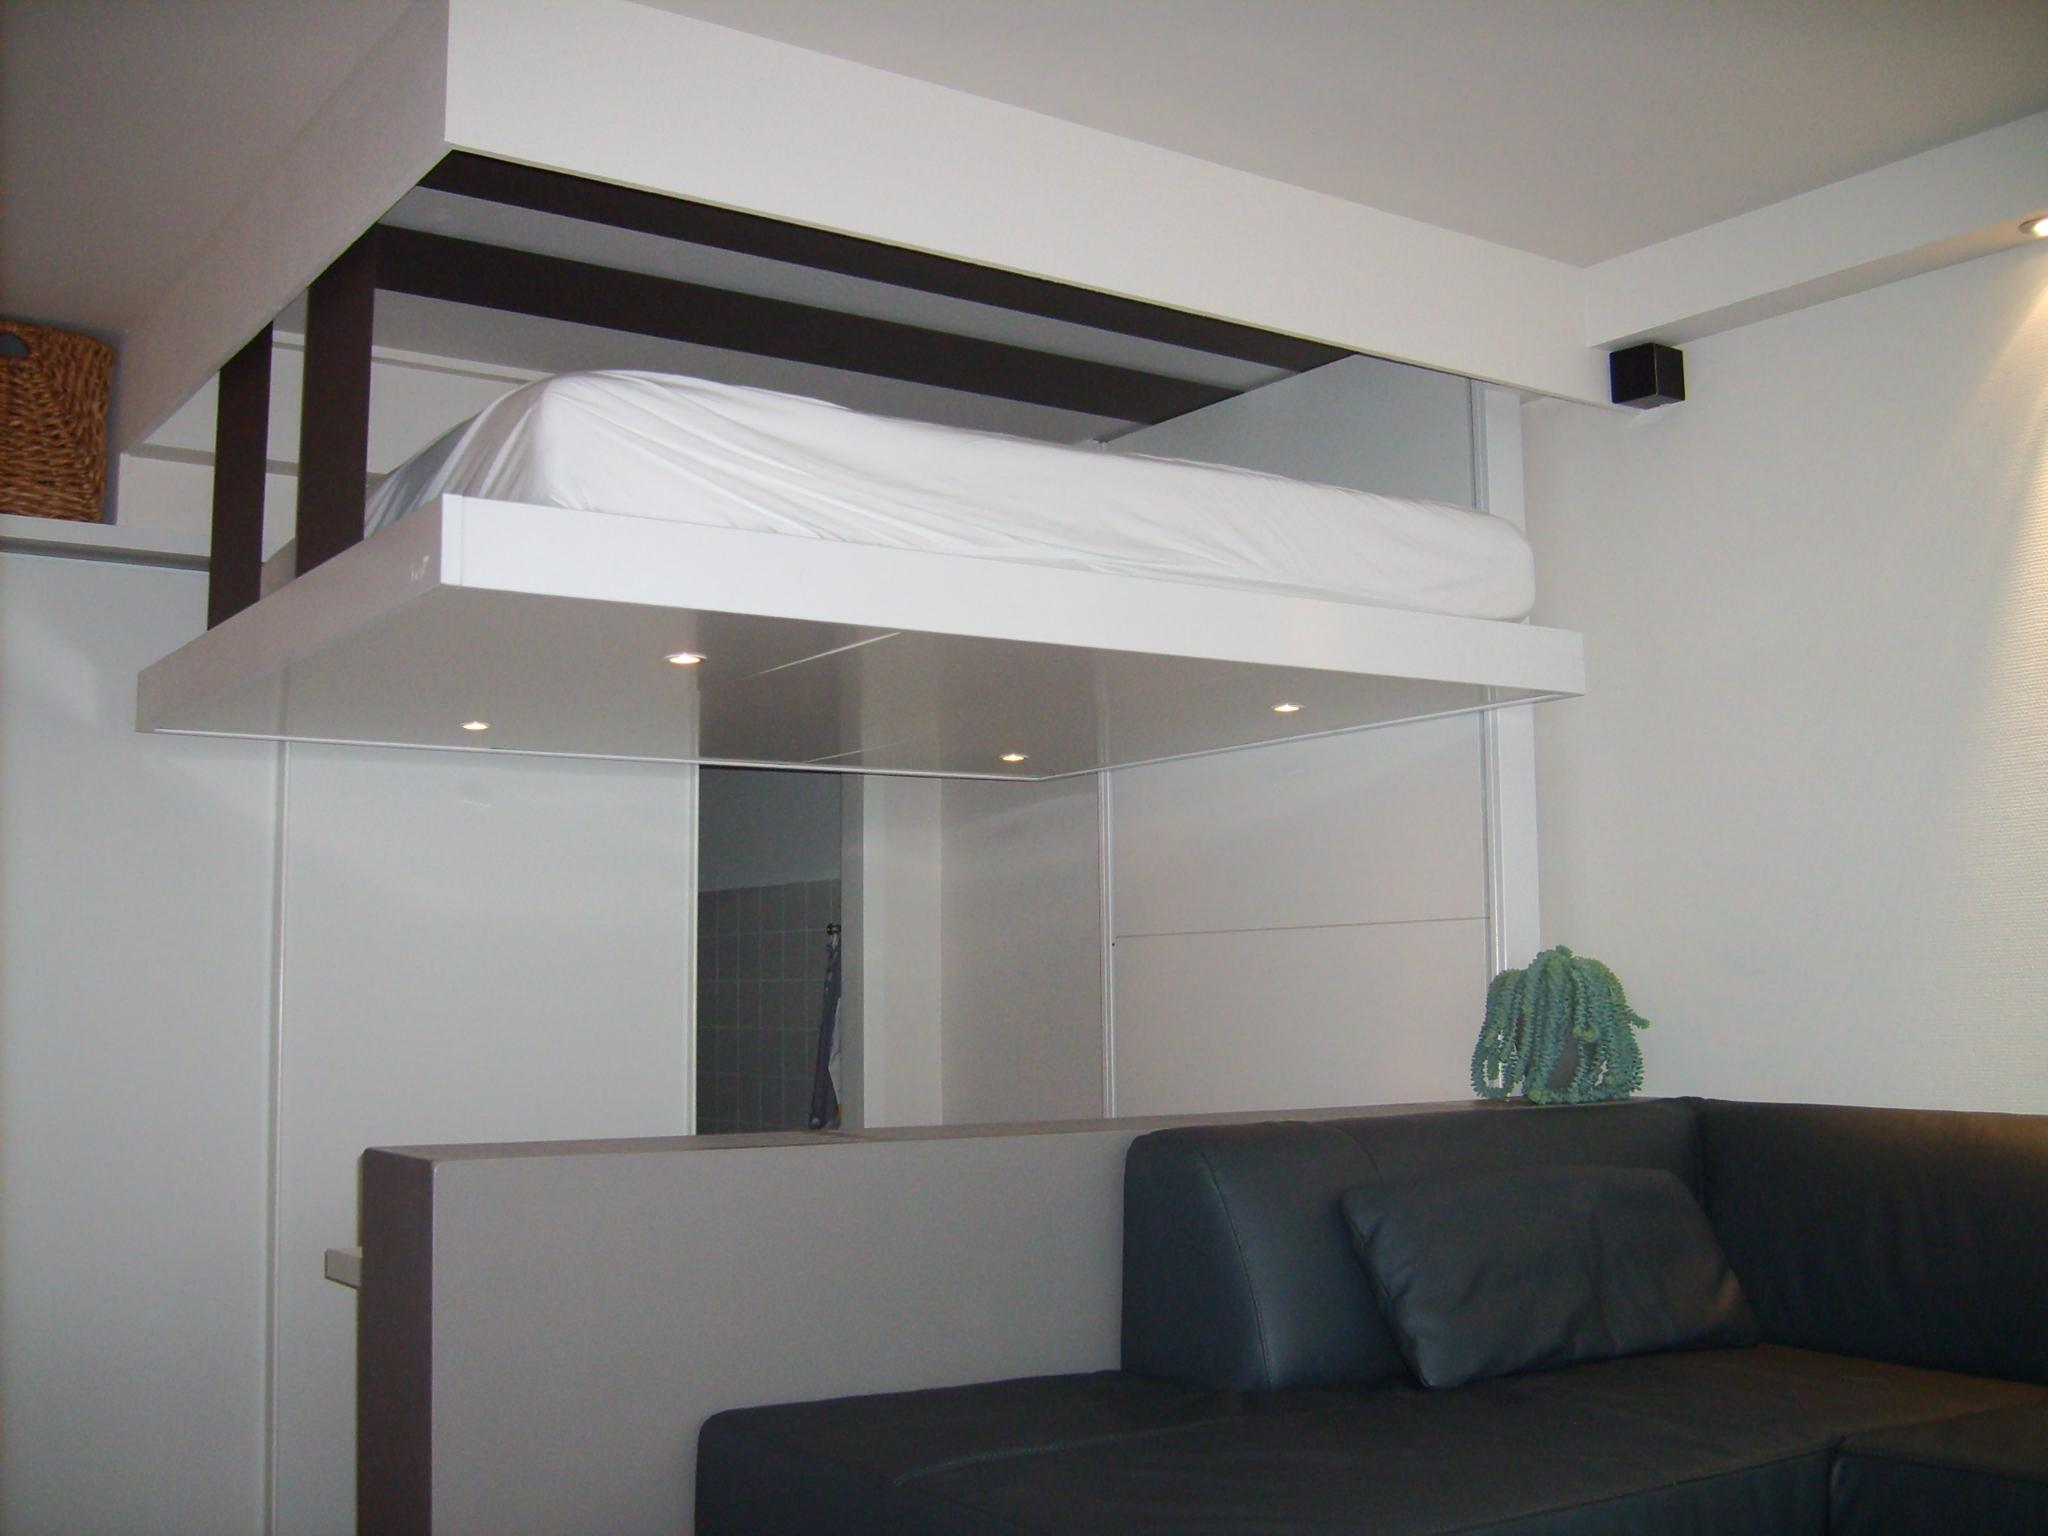 Bed Suspended From Ceiling Price For Suspended Ceiling 1200x600 Integral Led